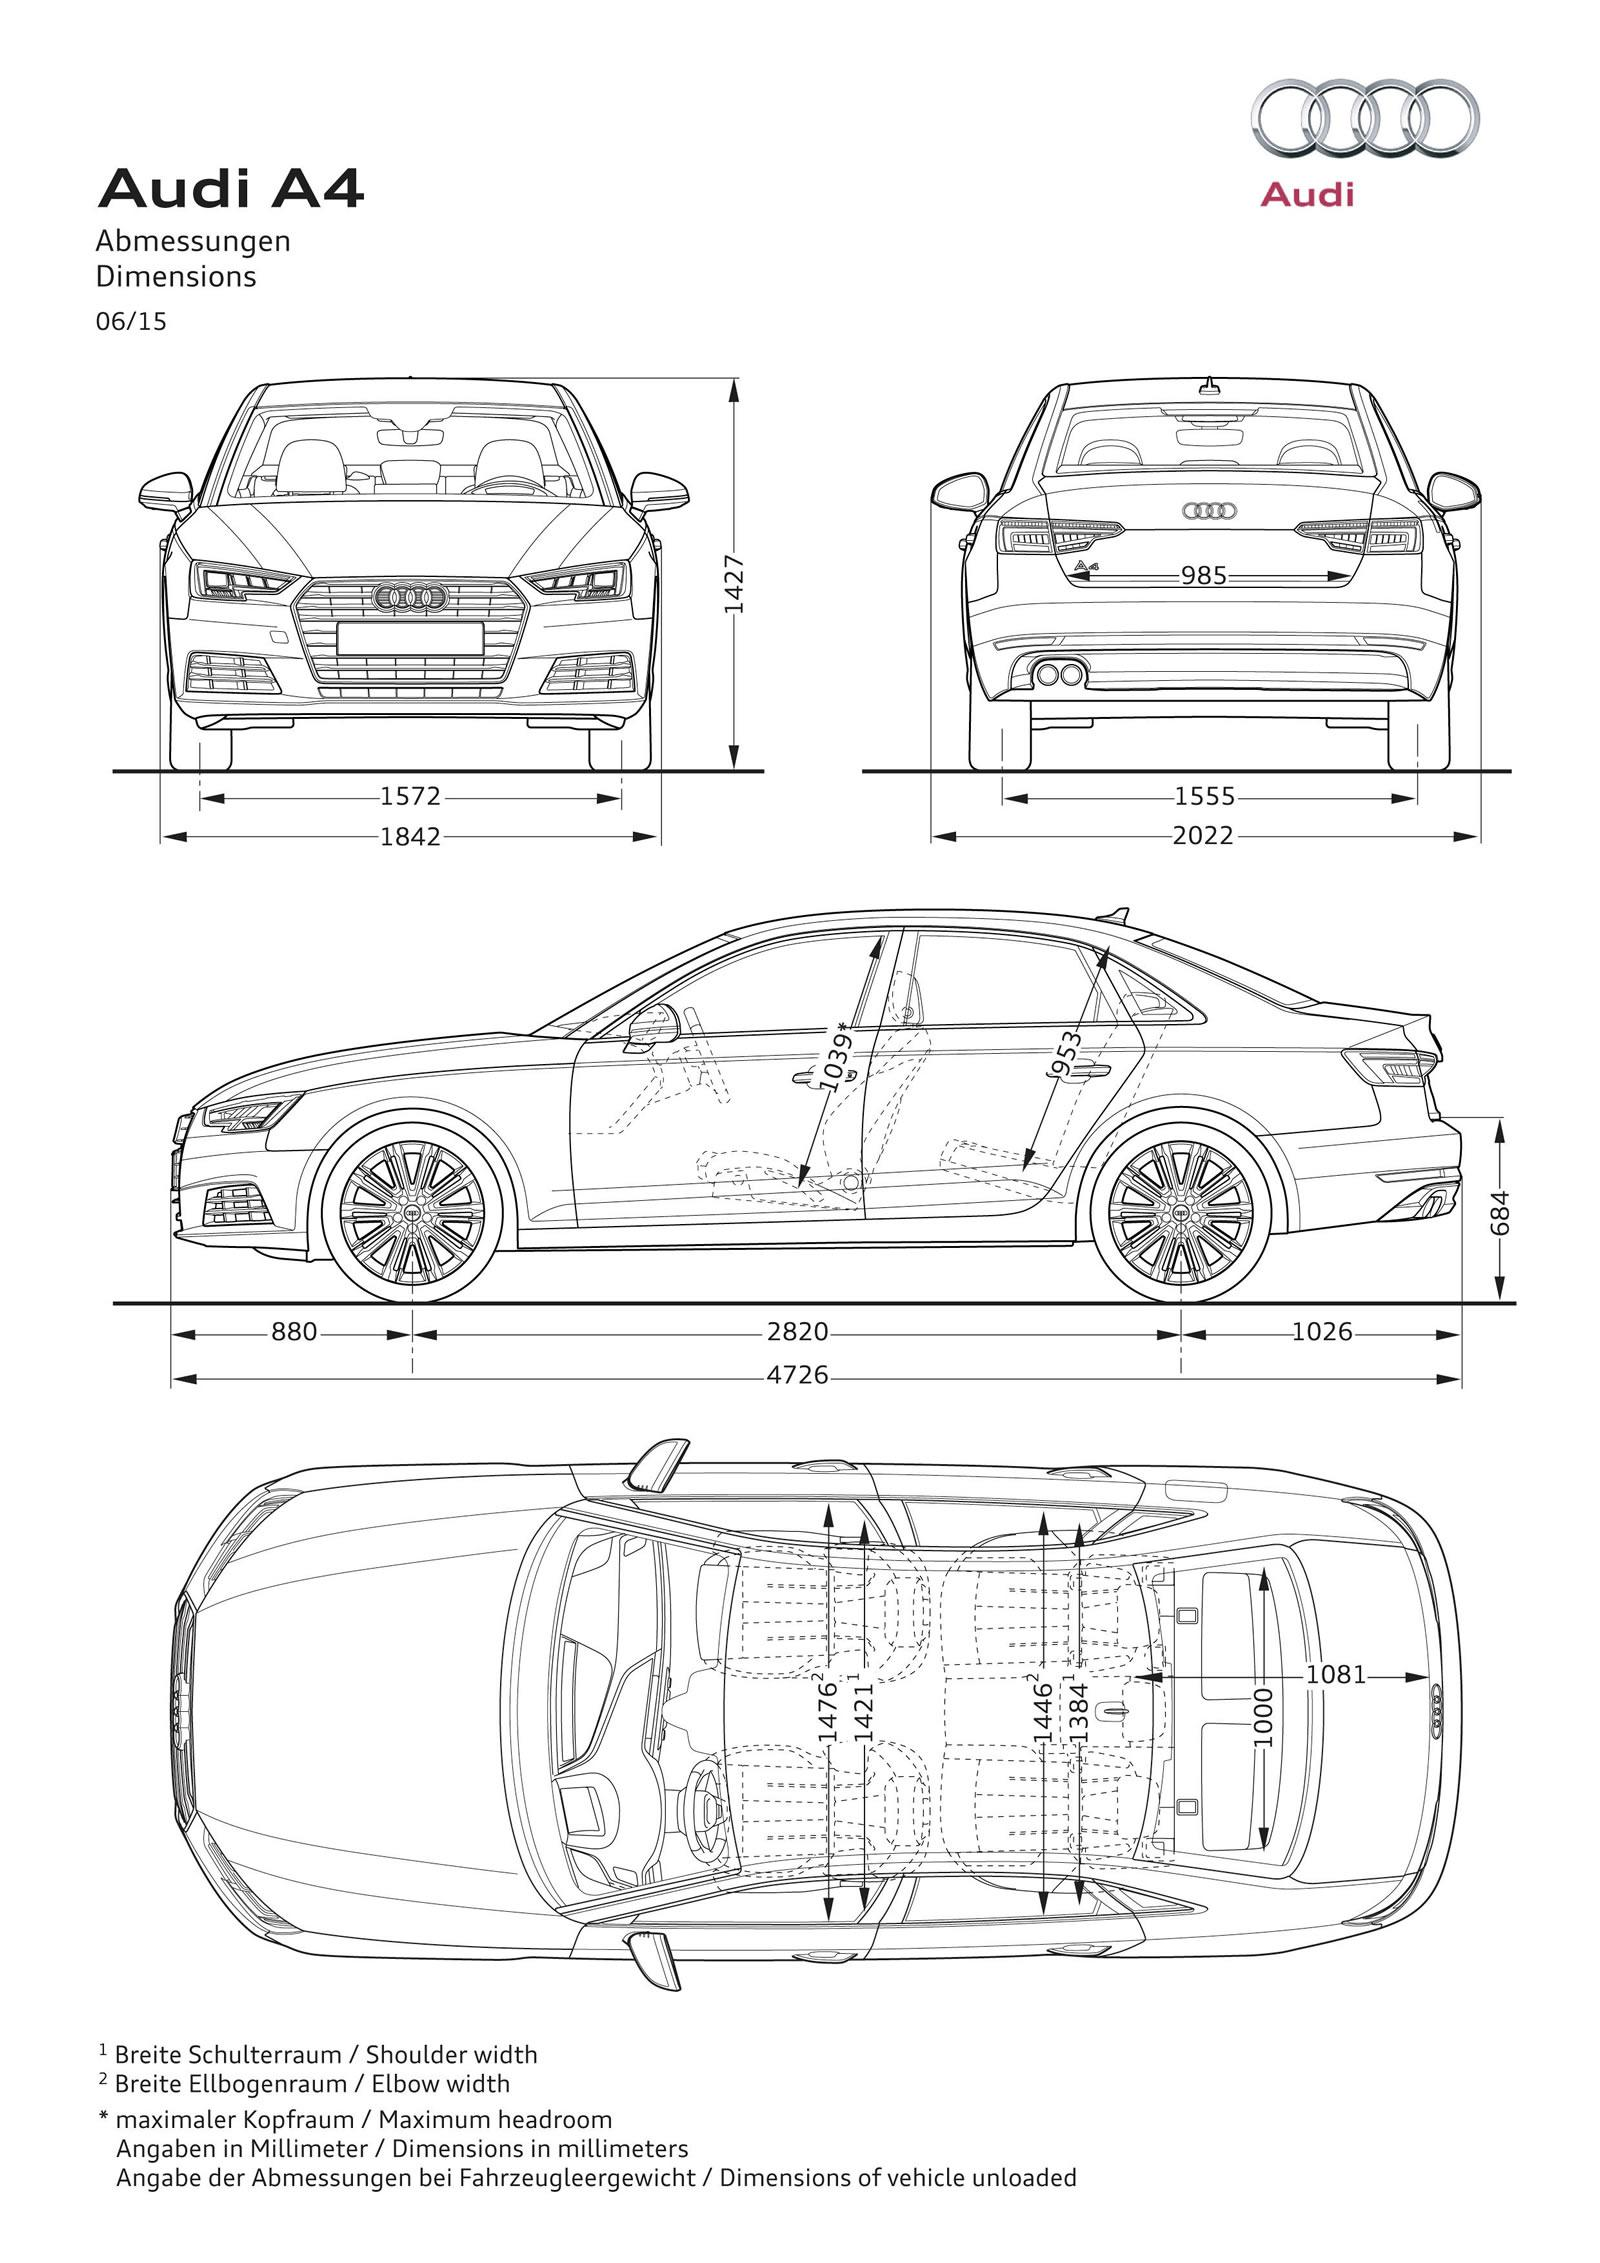 2017 Audi A4 Will Be Available with 2.0 TDI Diesel in the